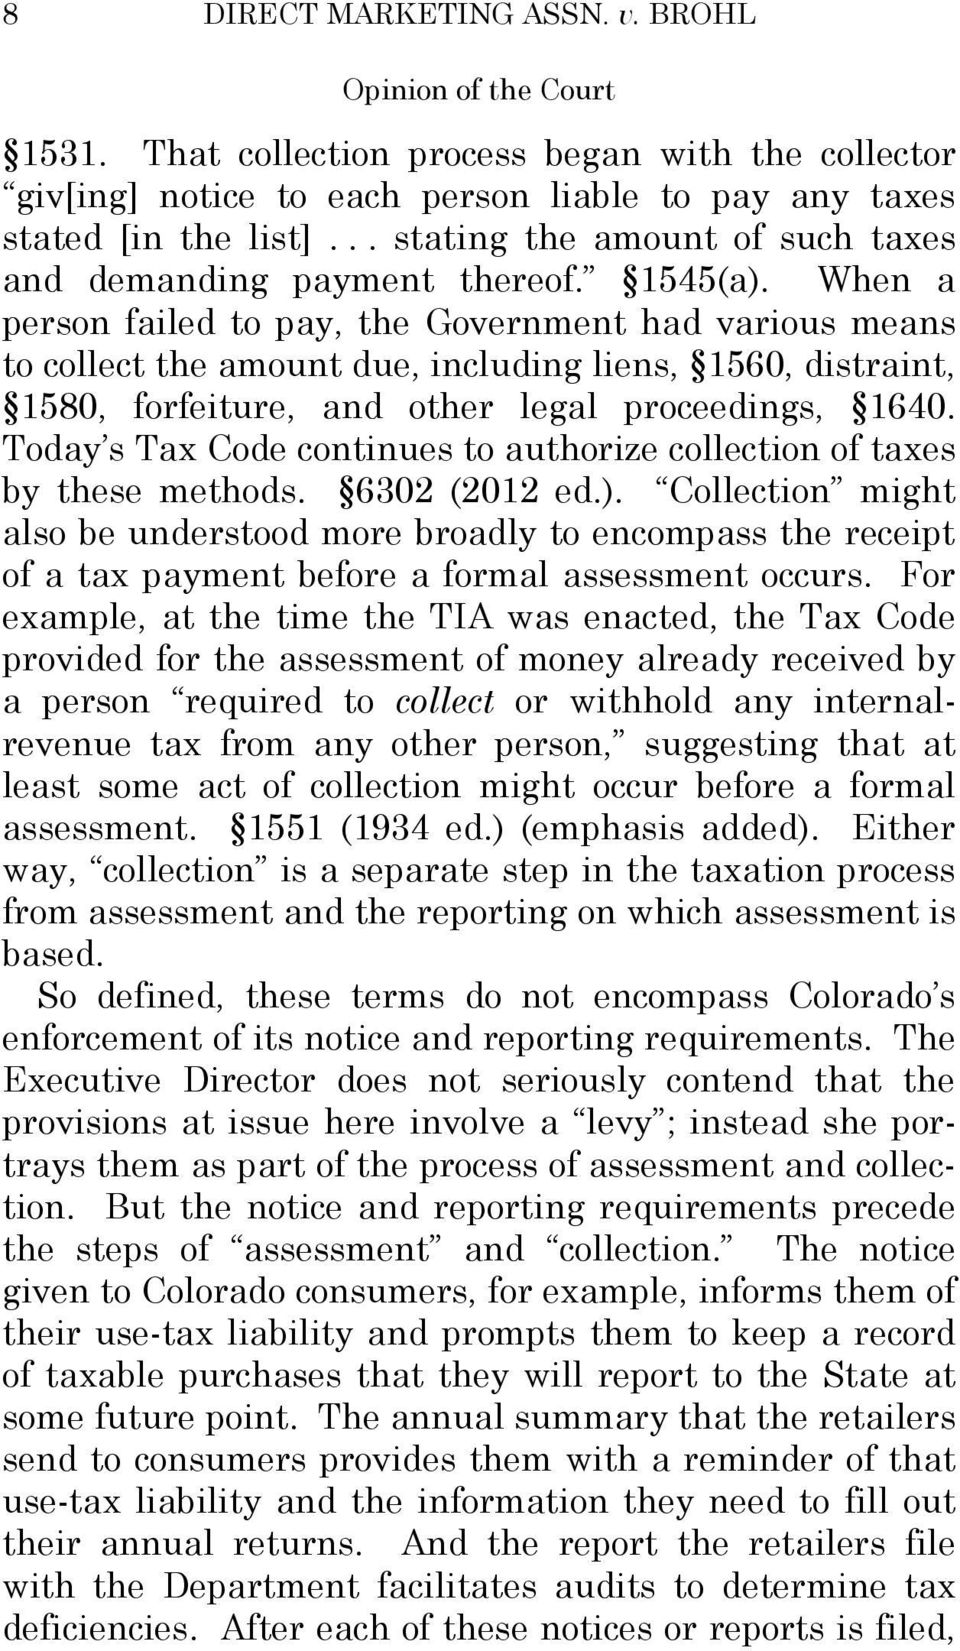 When a person failed to pay, the Government had various means to collect the amount due, including liens, 1560, distraint, 1580, forfeiture, and other legal proceedings, 1640.